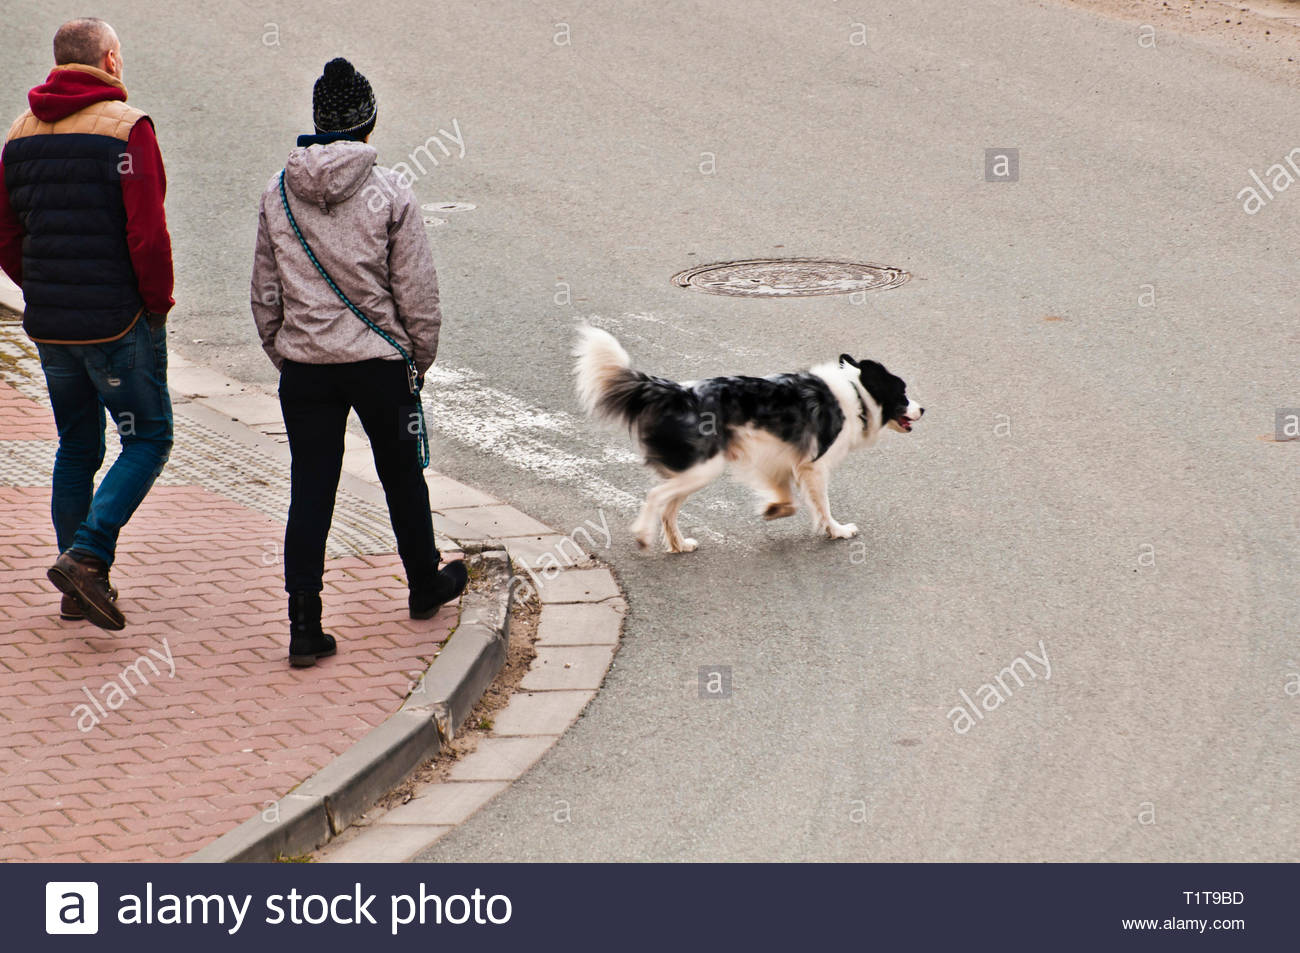 couple walking in the street with a dog - Stock Image